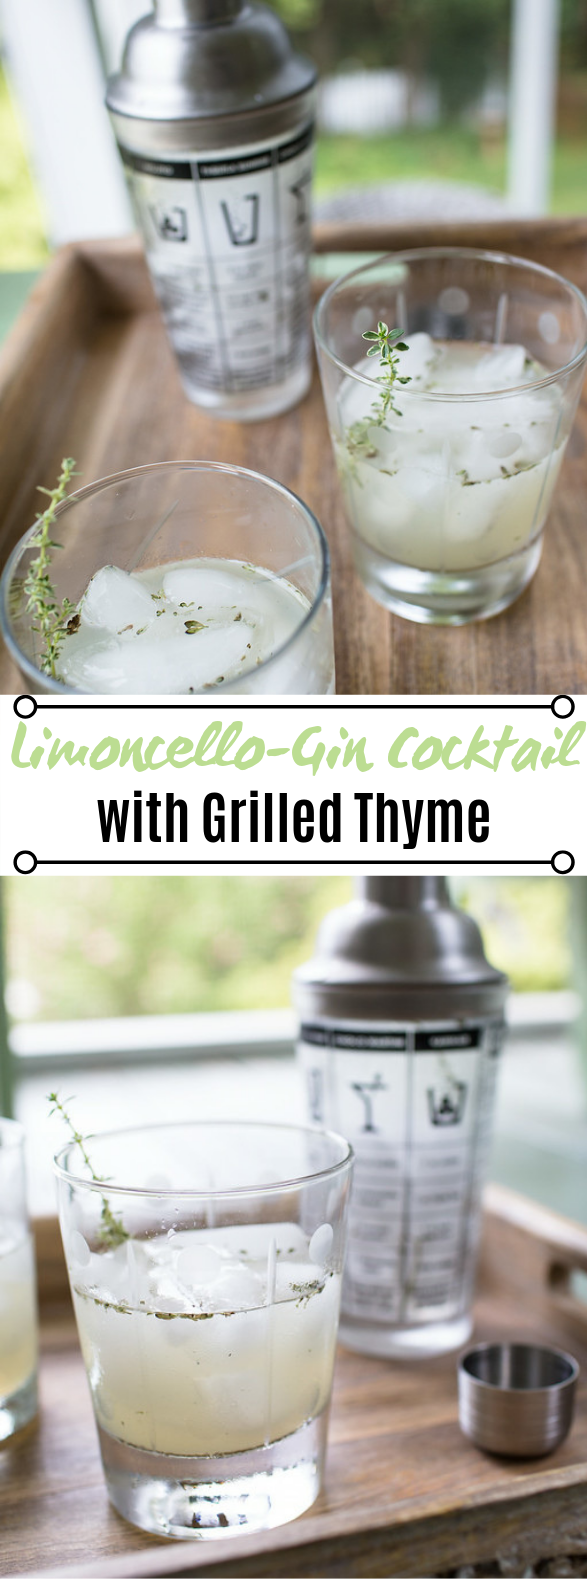 Limoncello-Gin Cocktail with Grilled Thyme #drinks #cocktails